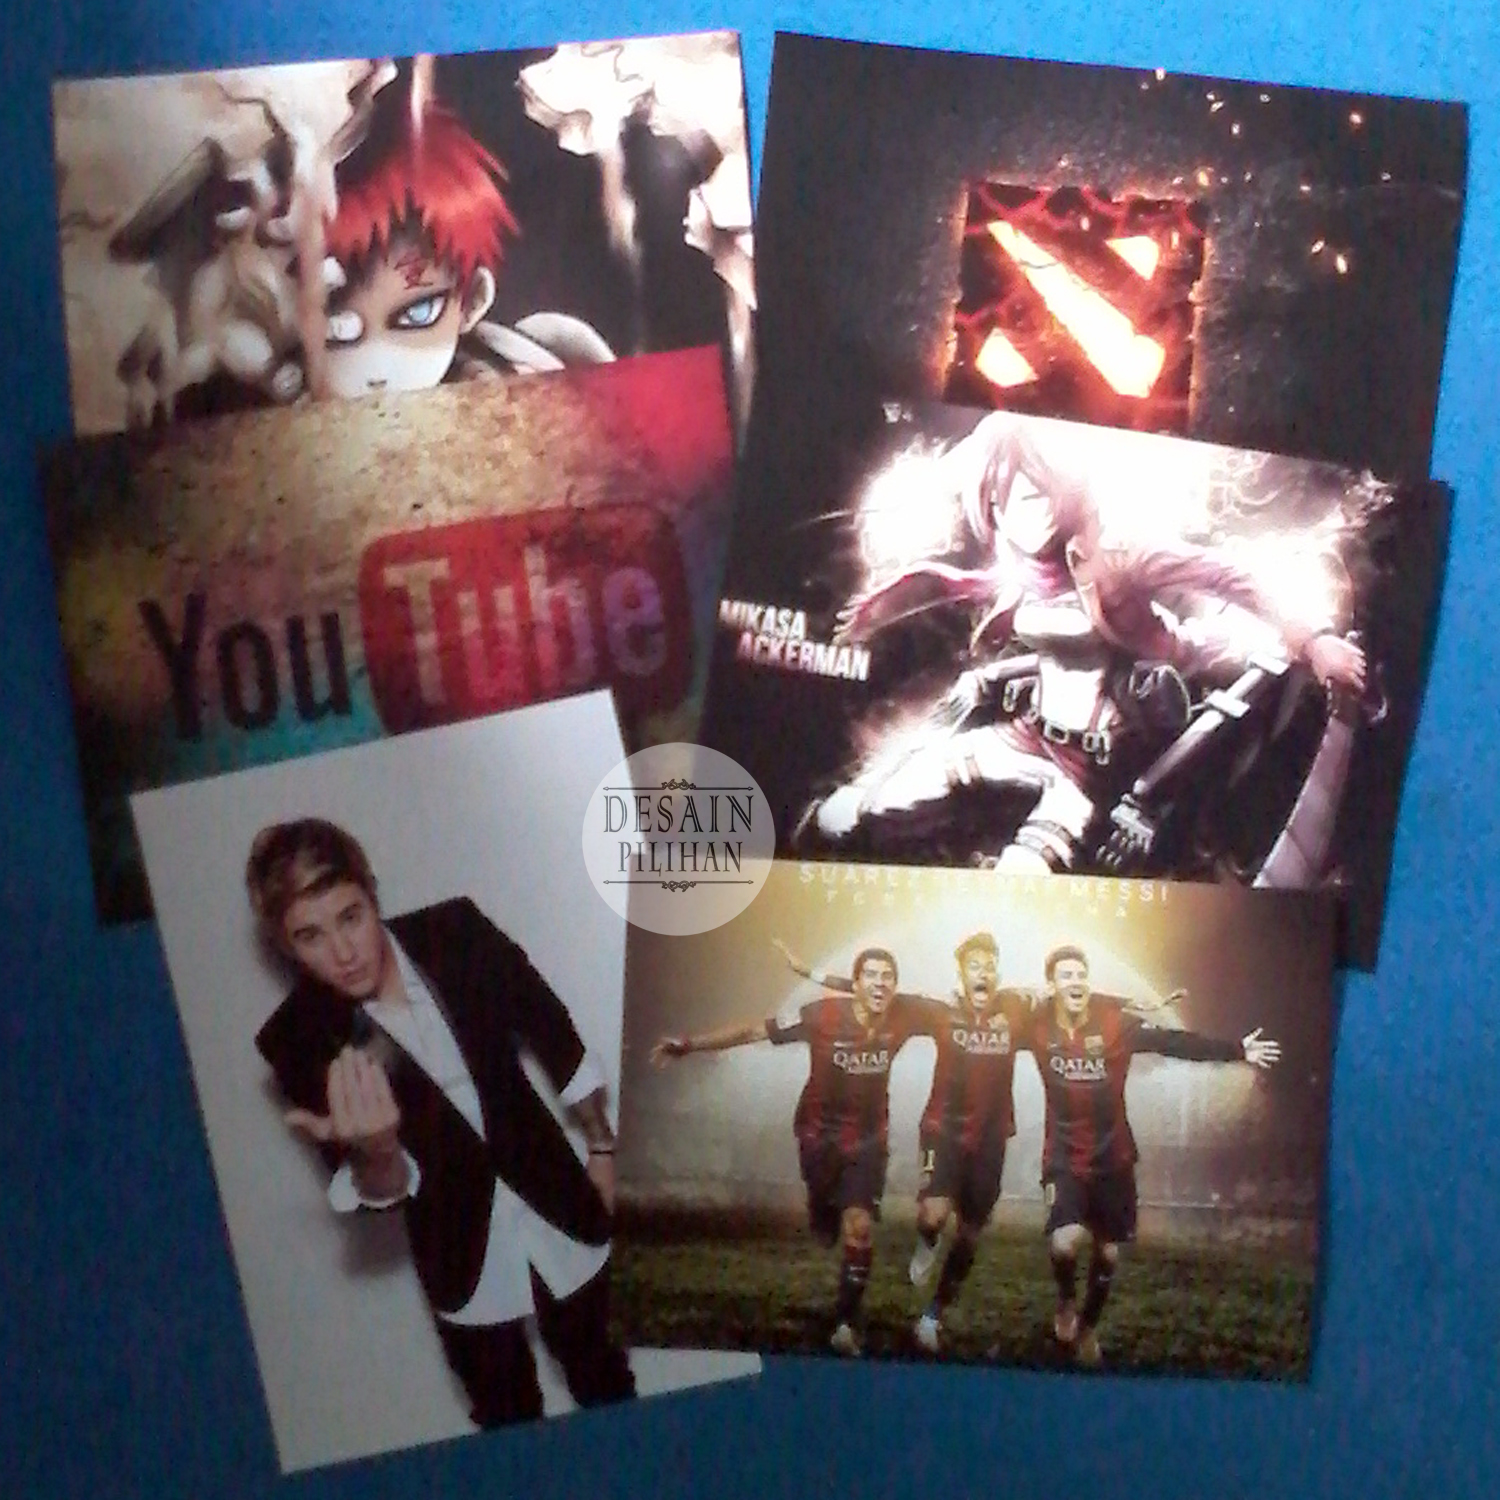 POSTER CUSTOM, POSTER JUSTIN BIEBER, POSTER FOOTBALL CLUB, POSTER YOUTUBE, POSTER ANIME, POSTER DOTA2